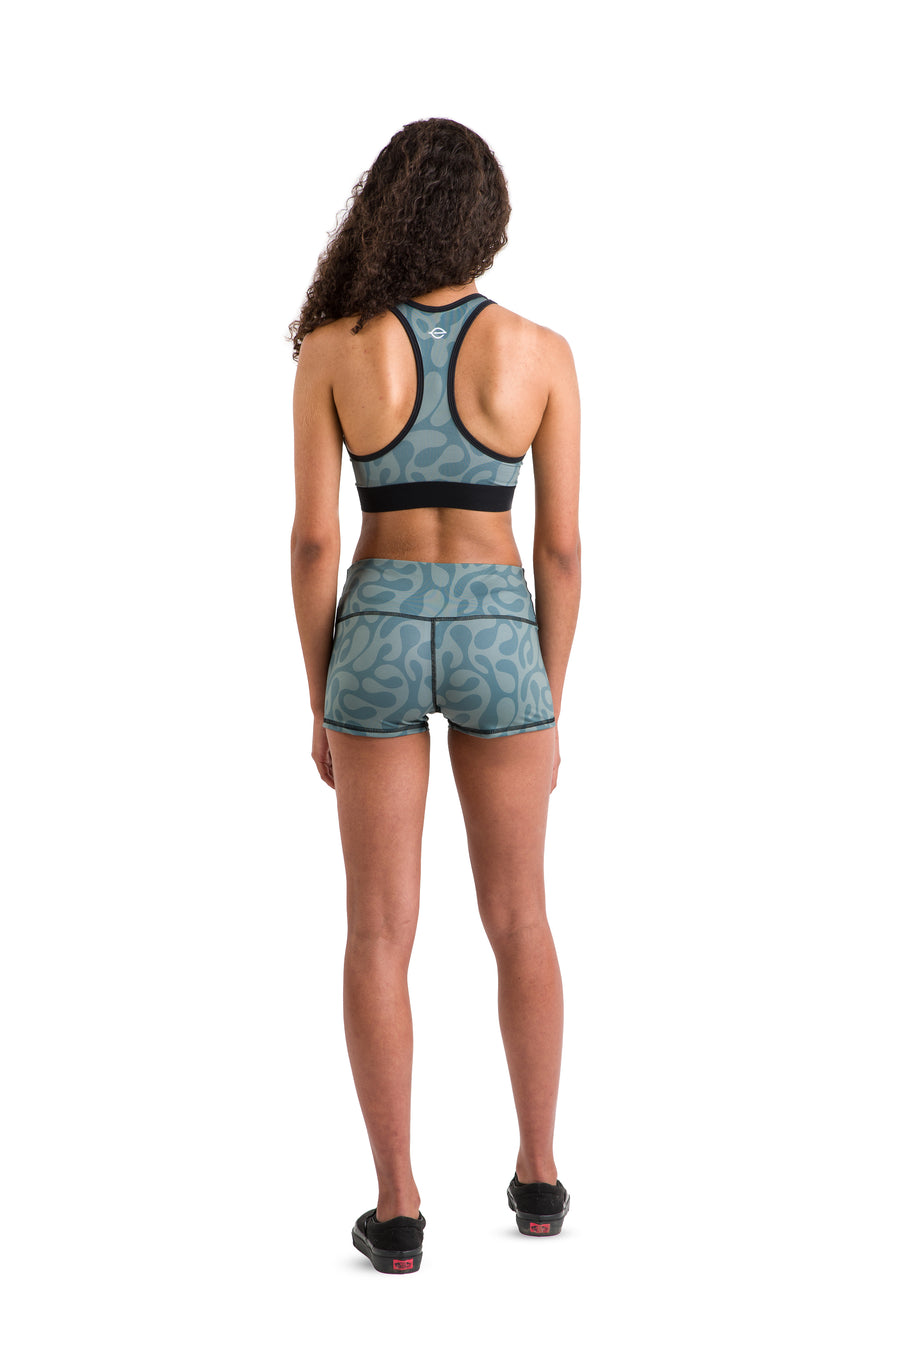 Eco Racerback Sports Bra (Green + Black Pattern)